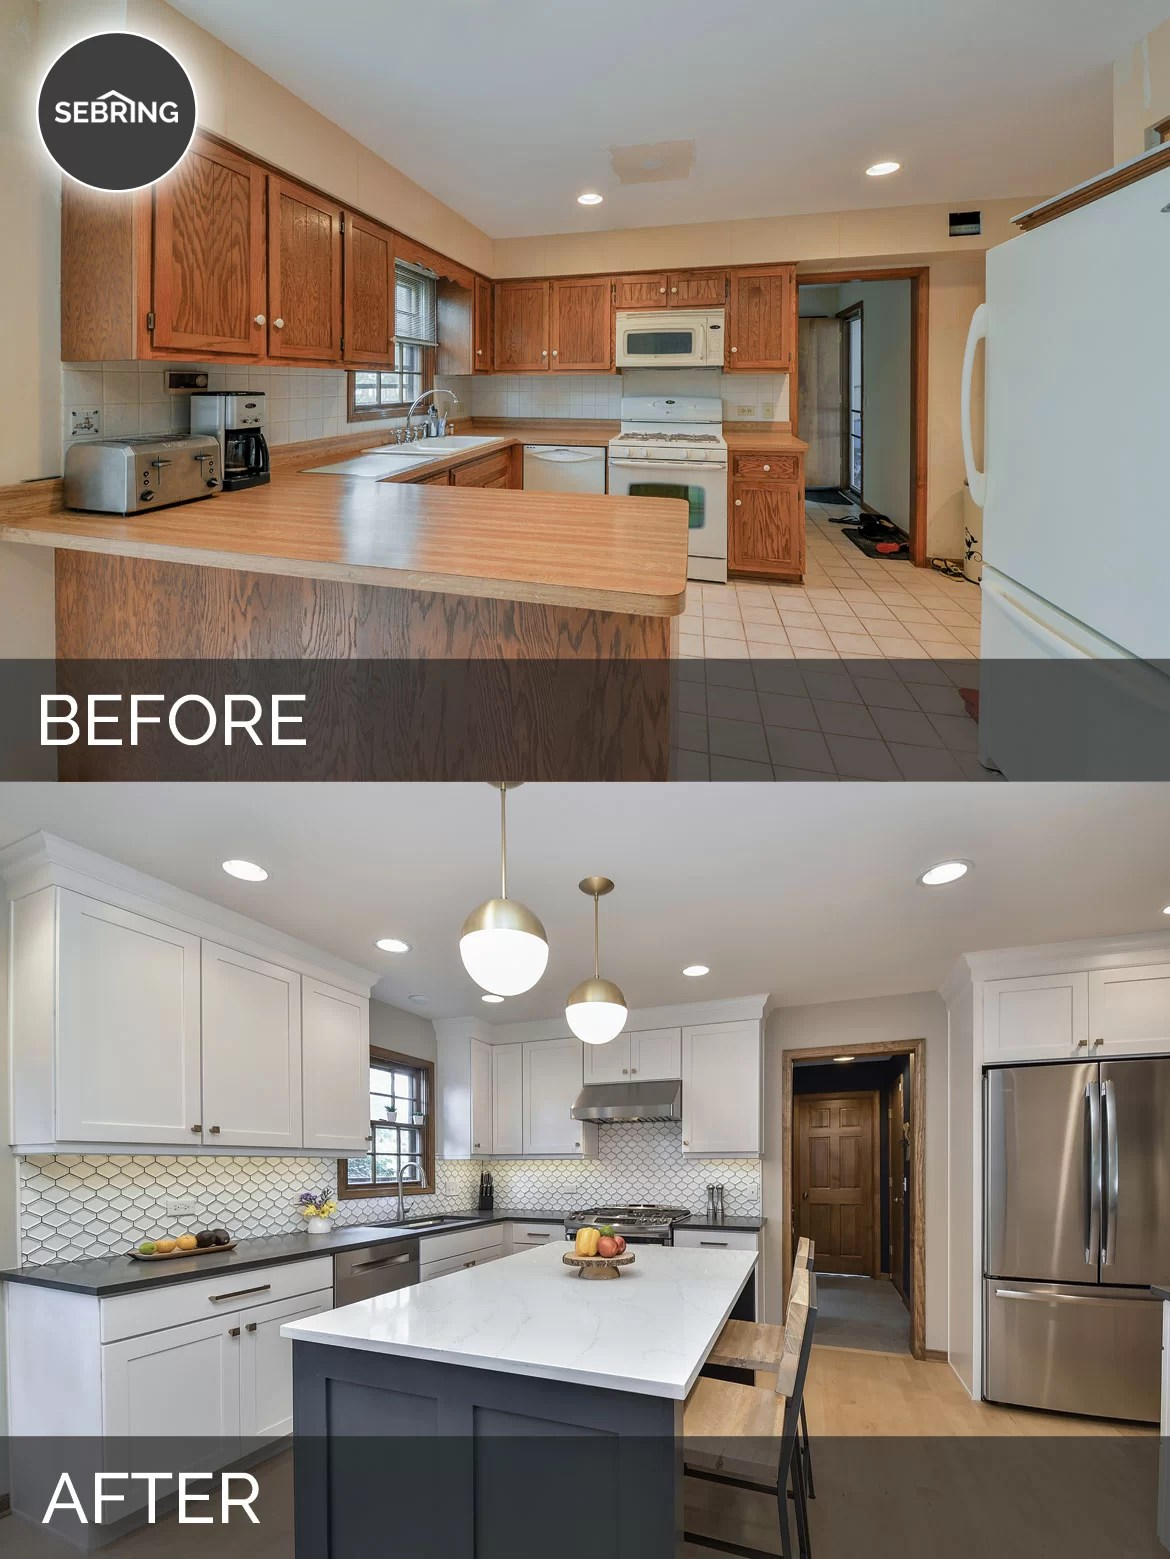 kitchen design naperville hinges justin & carina's before after pictures | home ...